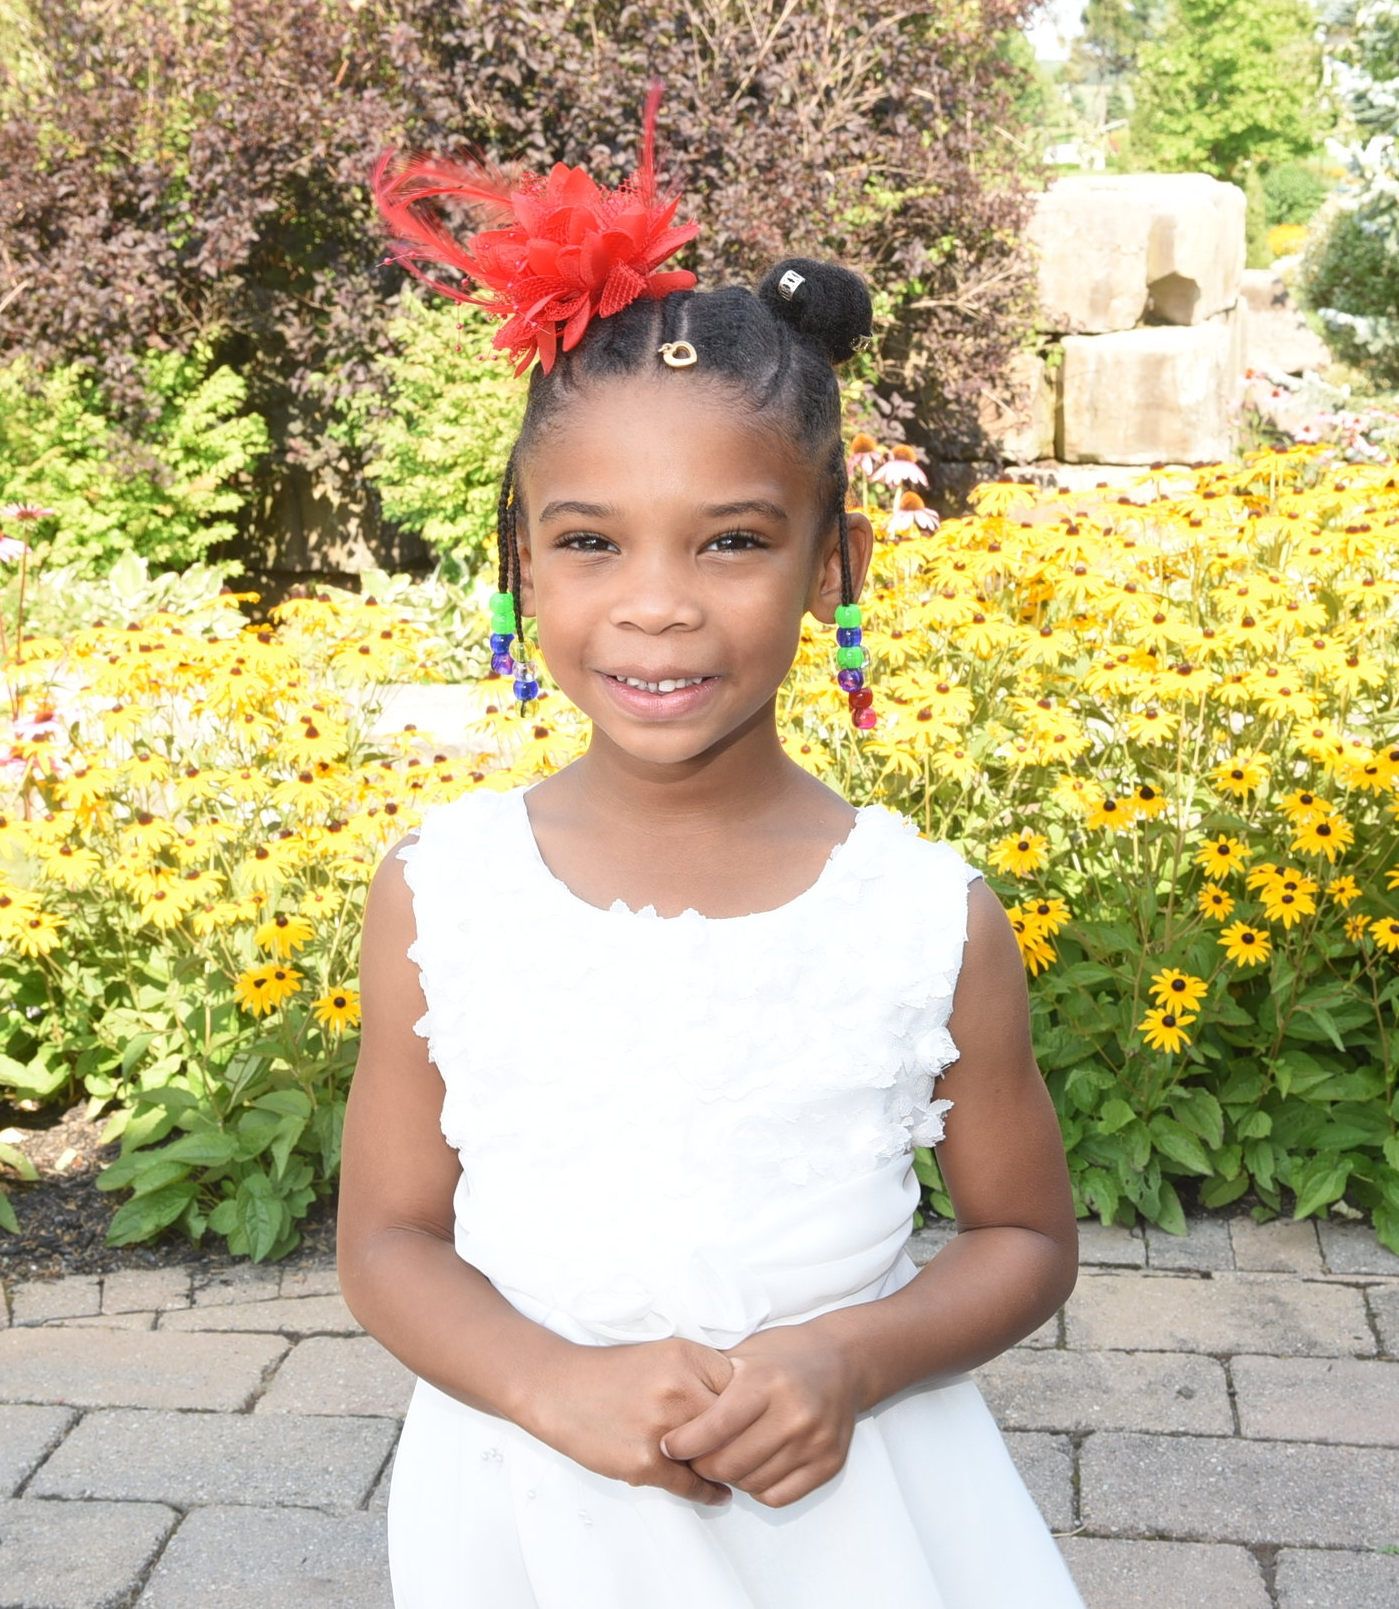 Four-year-old Naomi-Grace Goode sang the national anthem at the celebration